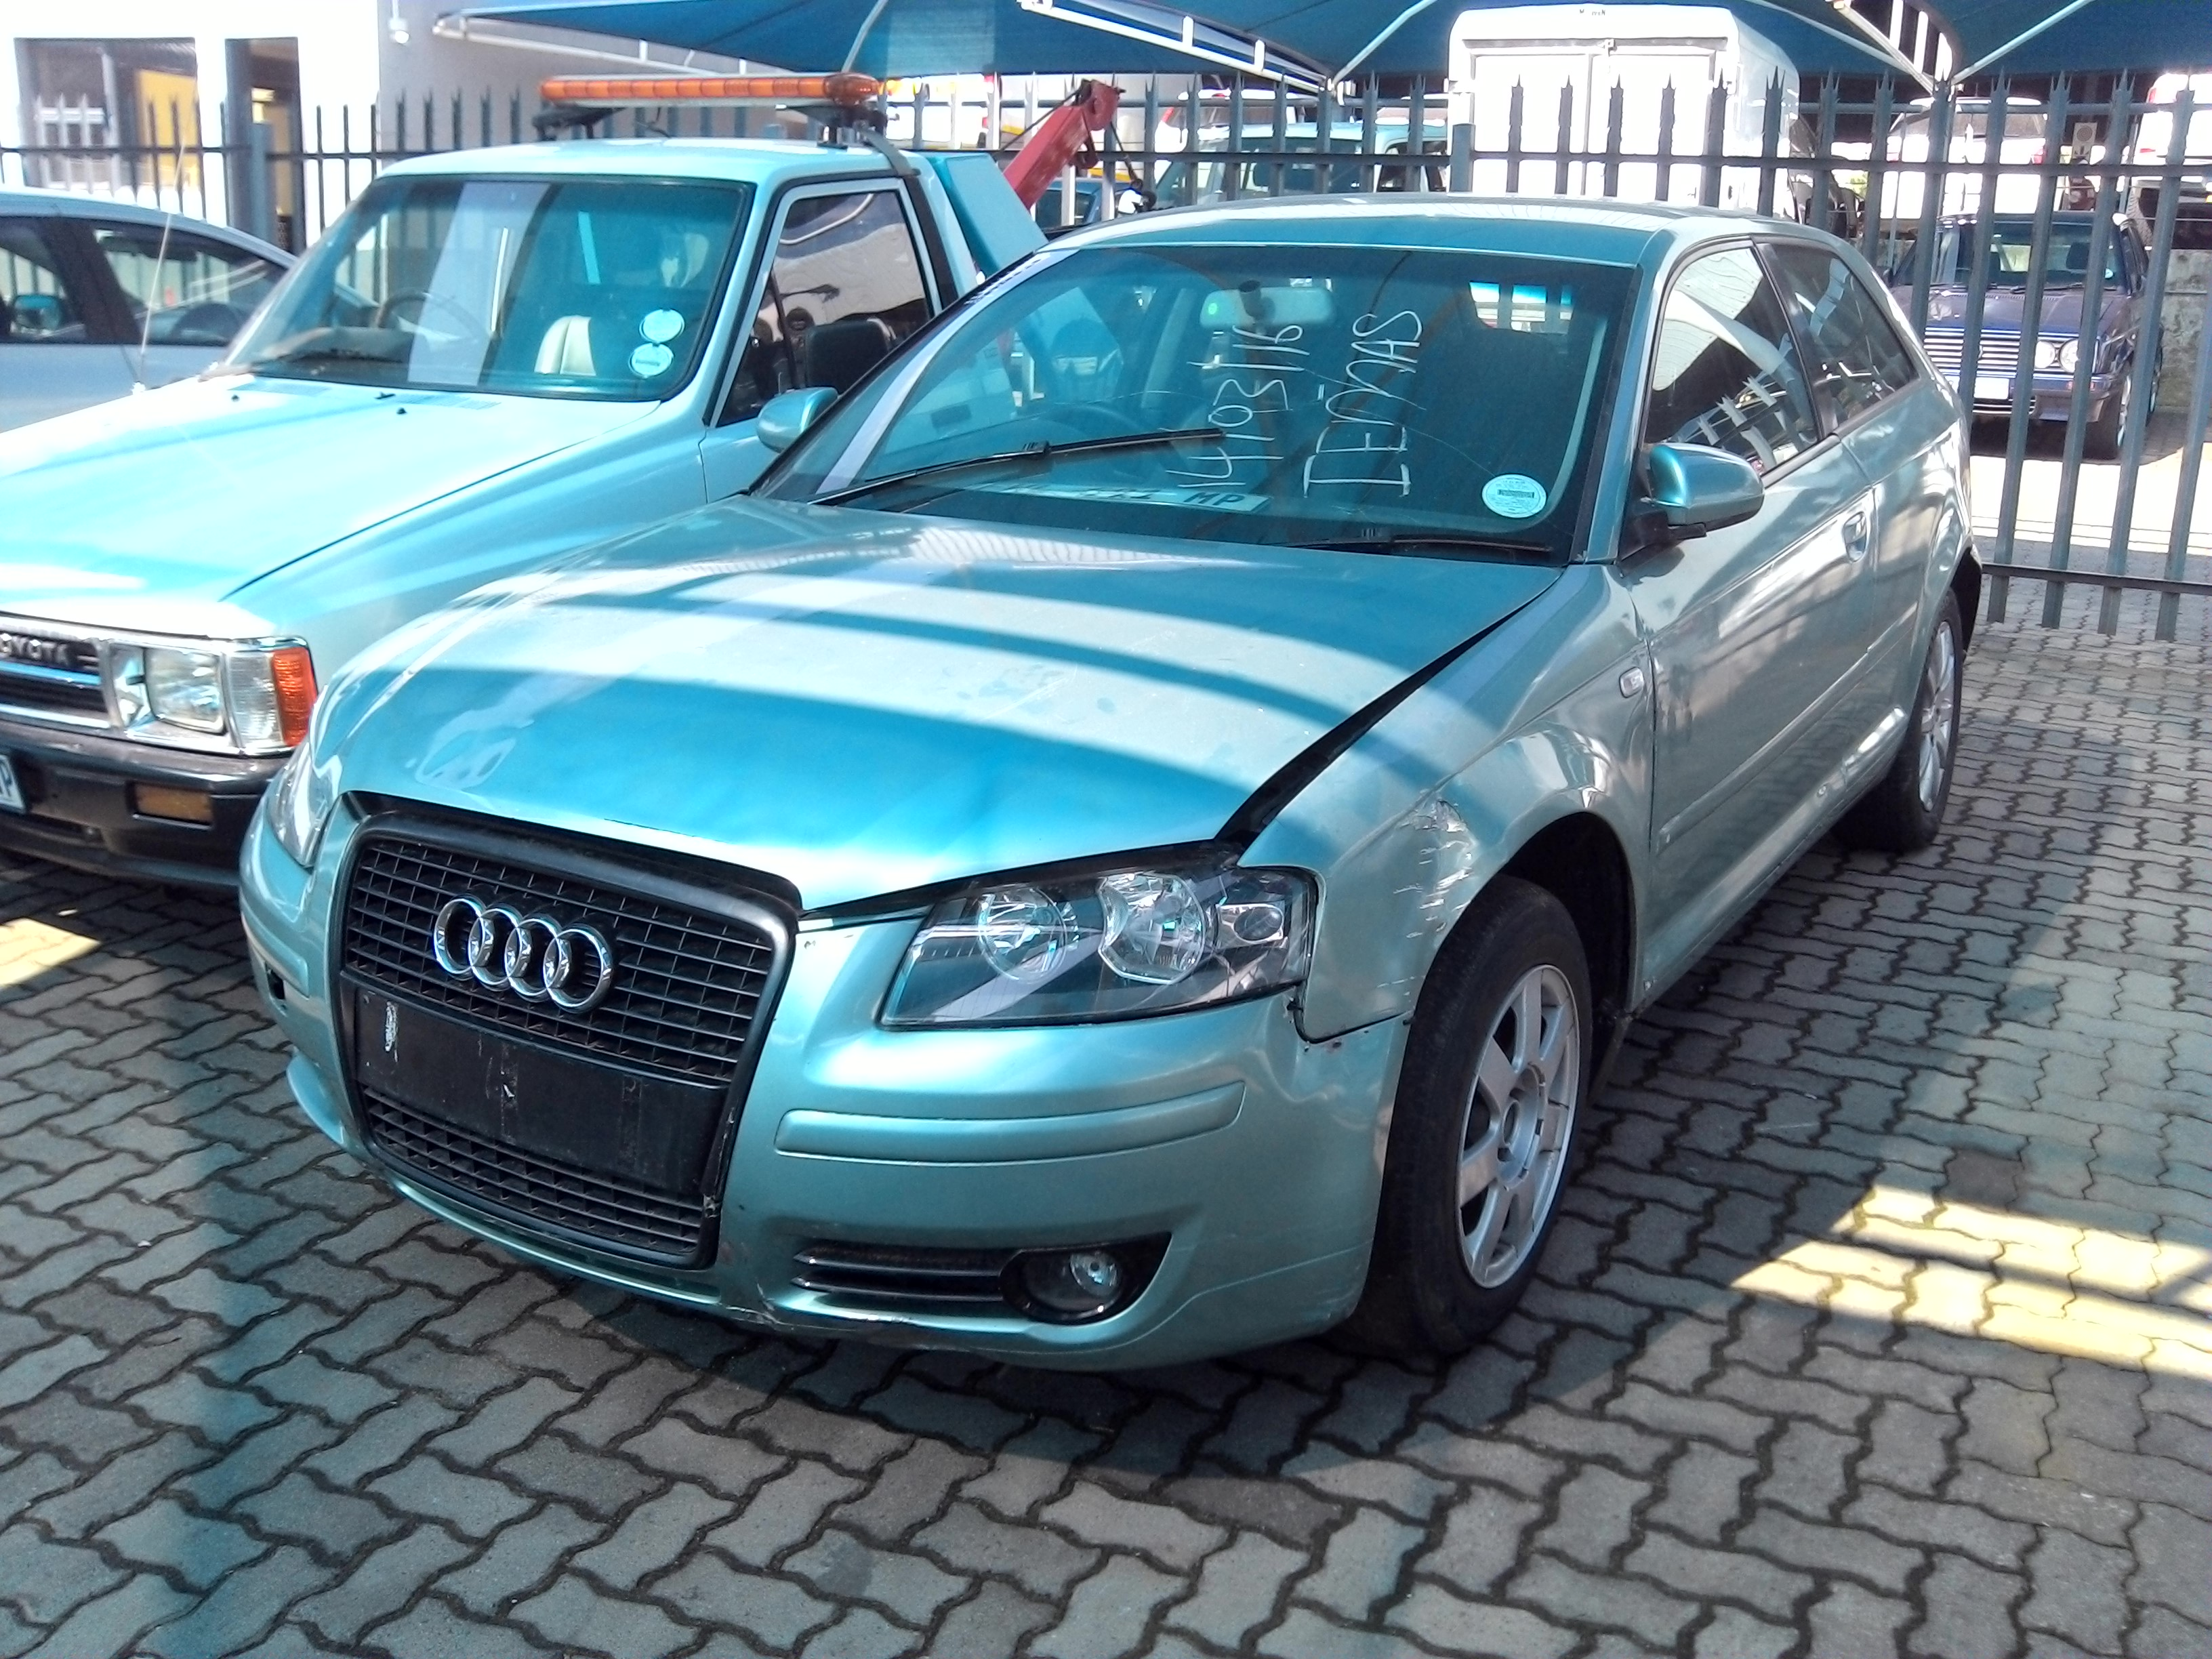 2003 audi a3 2 0 tdi ambition problem starter km 277386 colour grey market r605. Black Bedroom Furniture Sets. Home Design Ideas